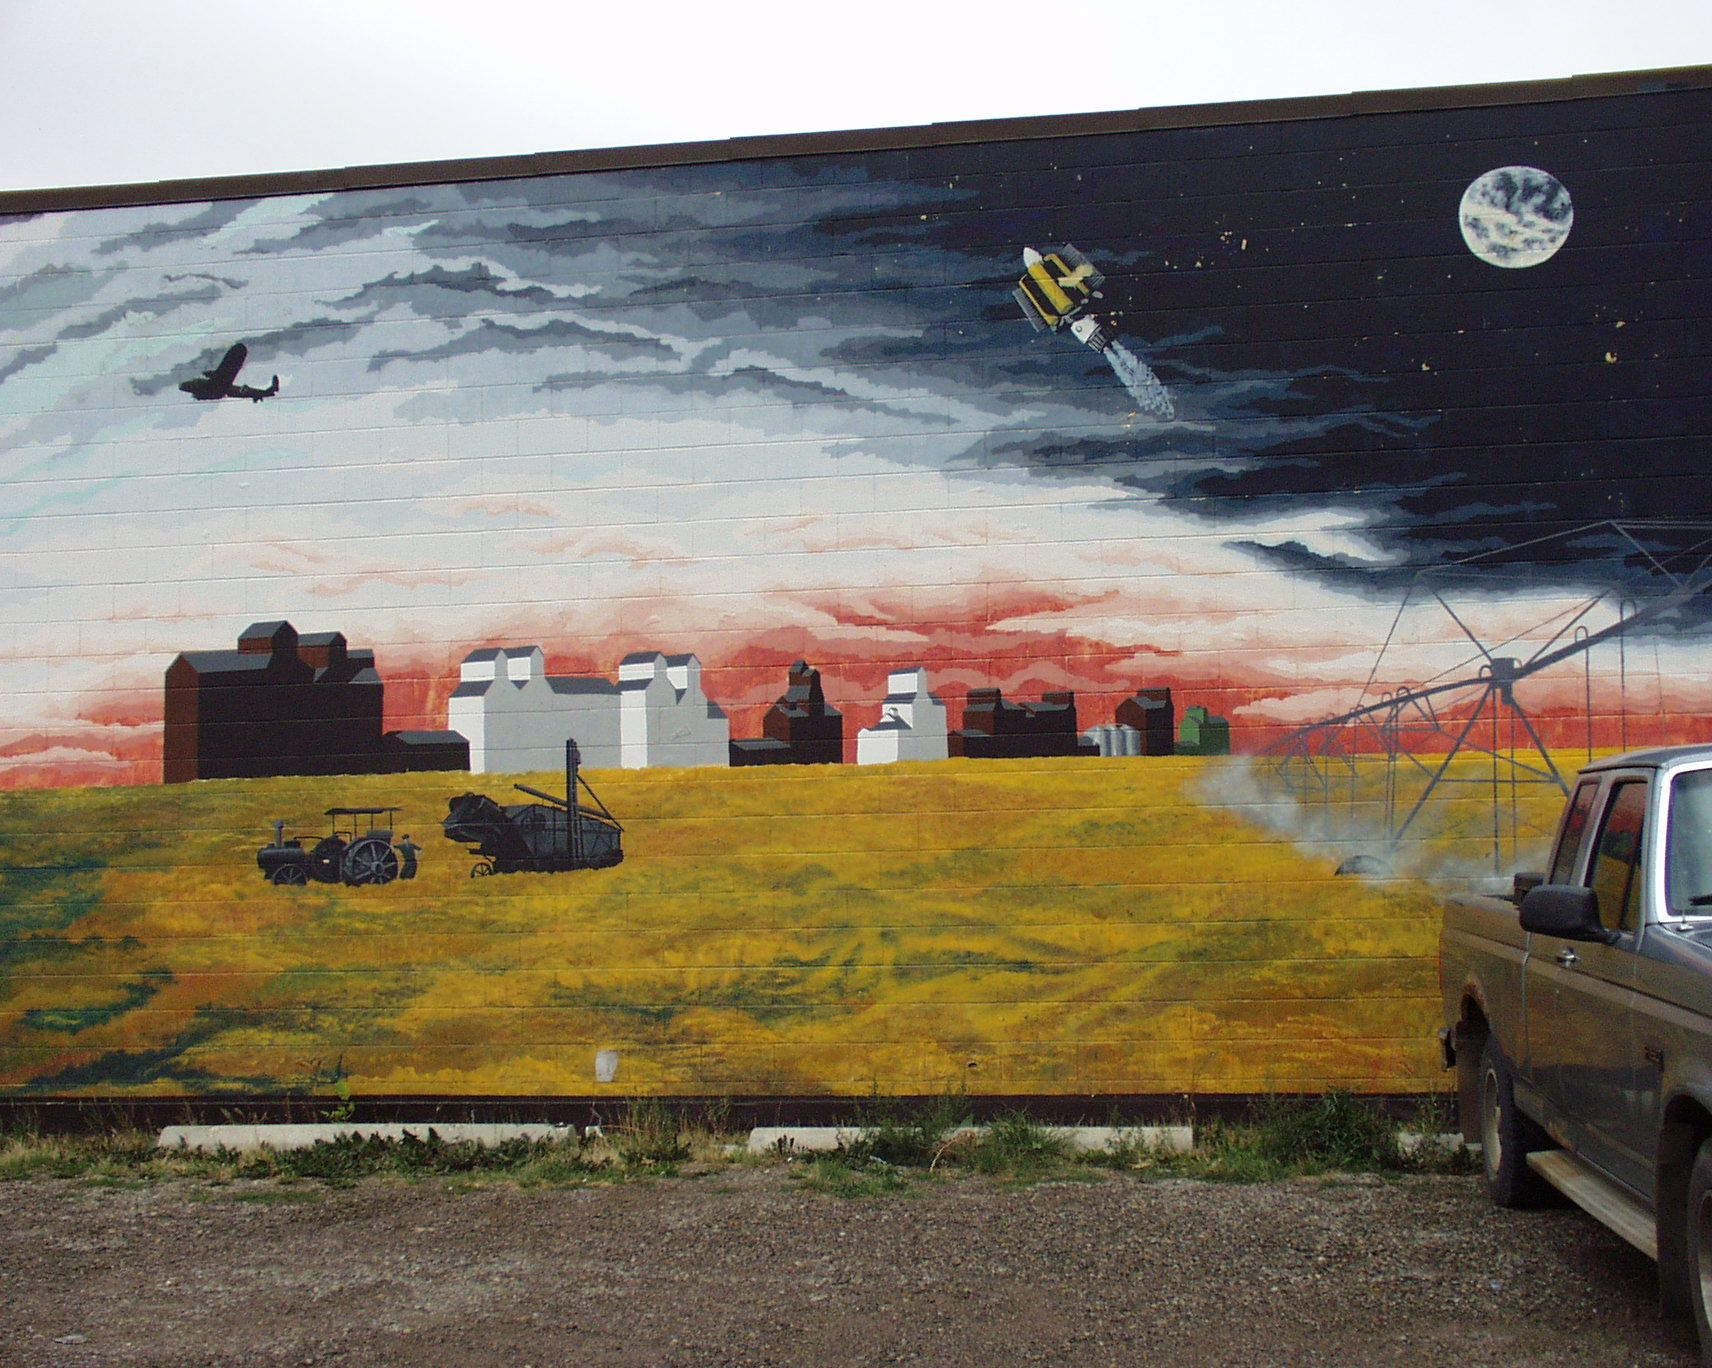 wall mural depicting agriculture and space flight in vulcan wall mural depicting agriculture and space flight in vulcan alberta canada